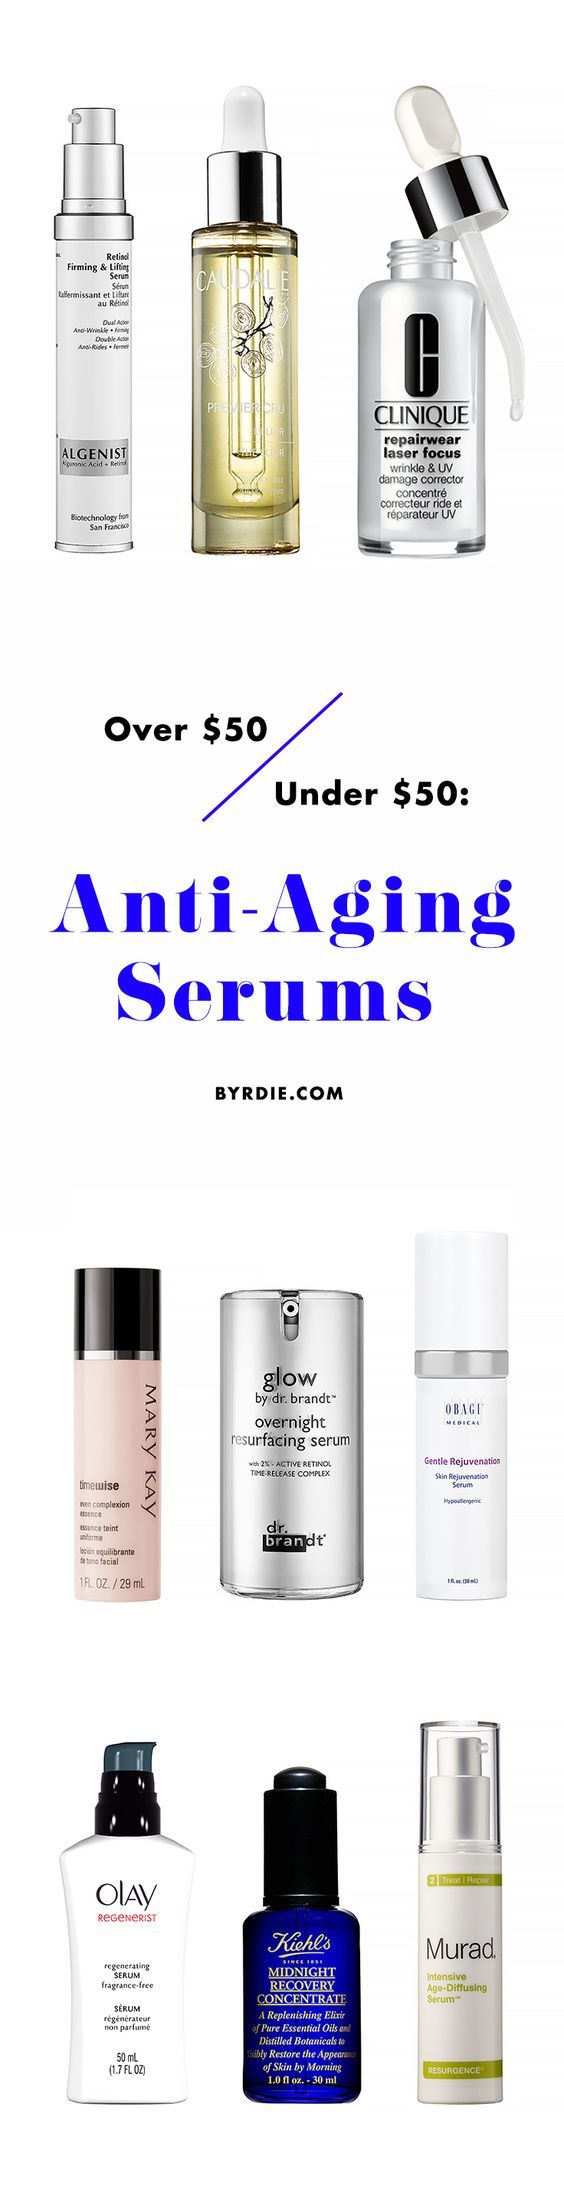 Anti-aging serums for every budget